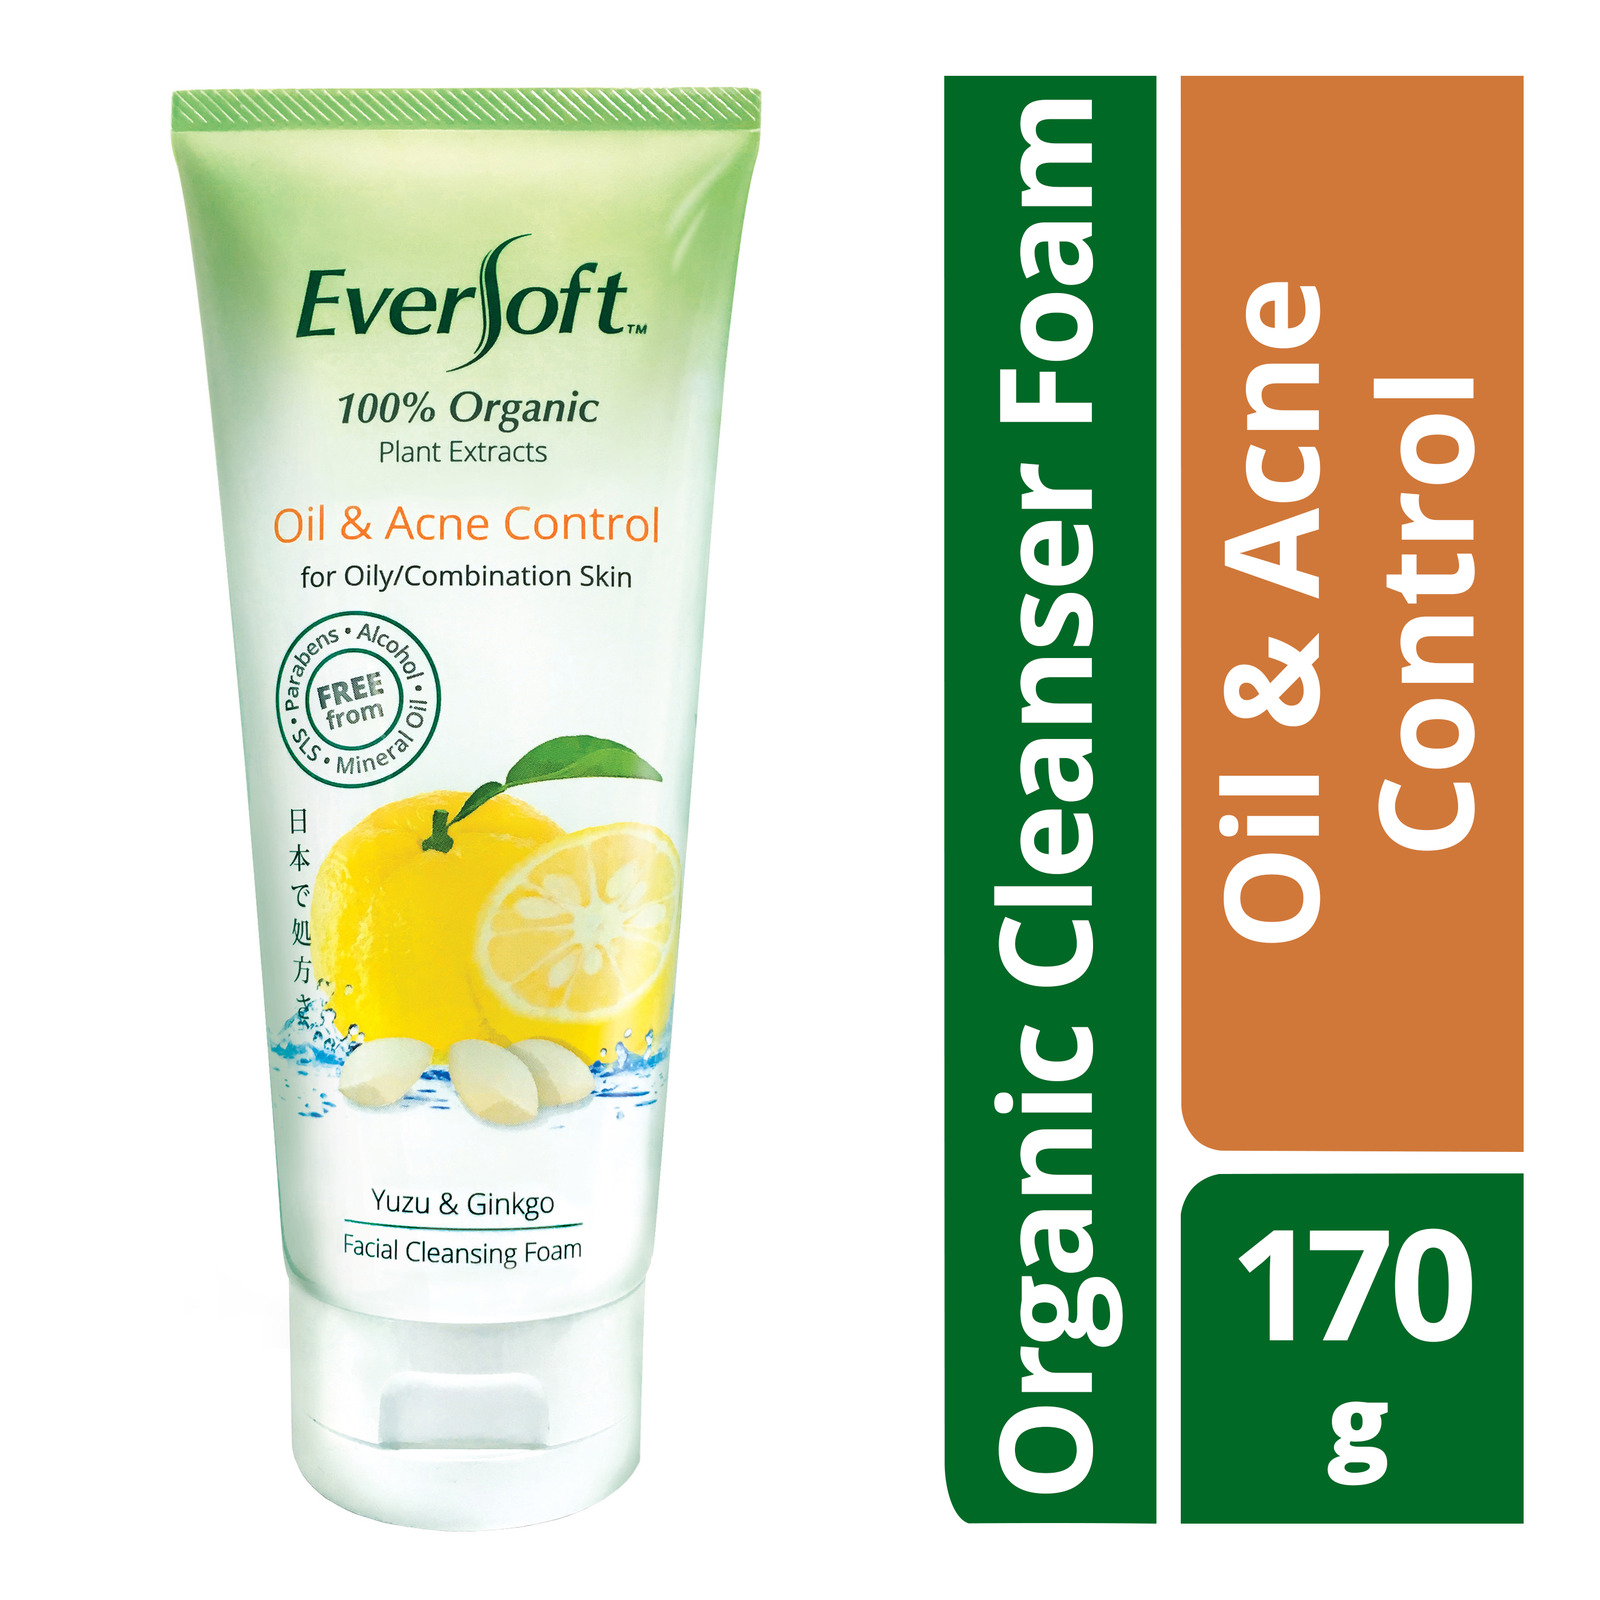 Eversoft Organic Cleanser Foam - Oil & Acne Control